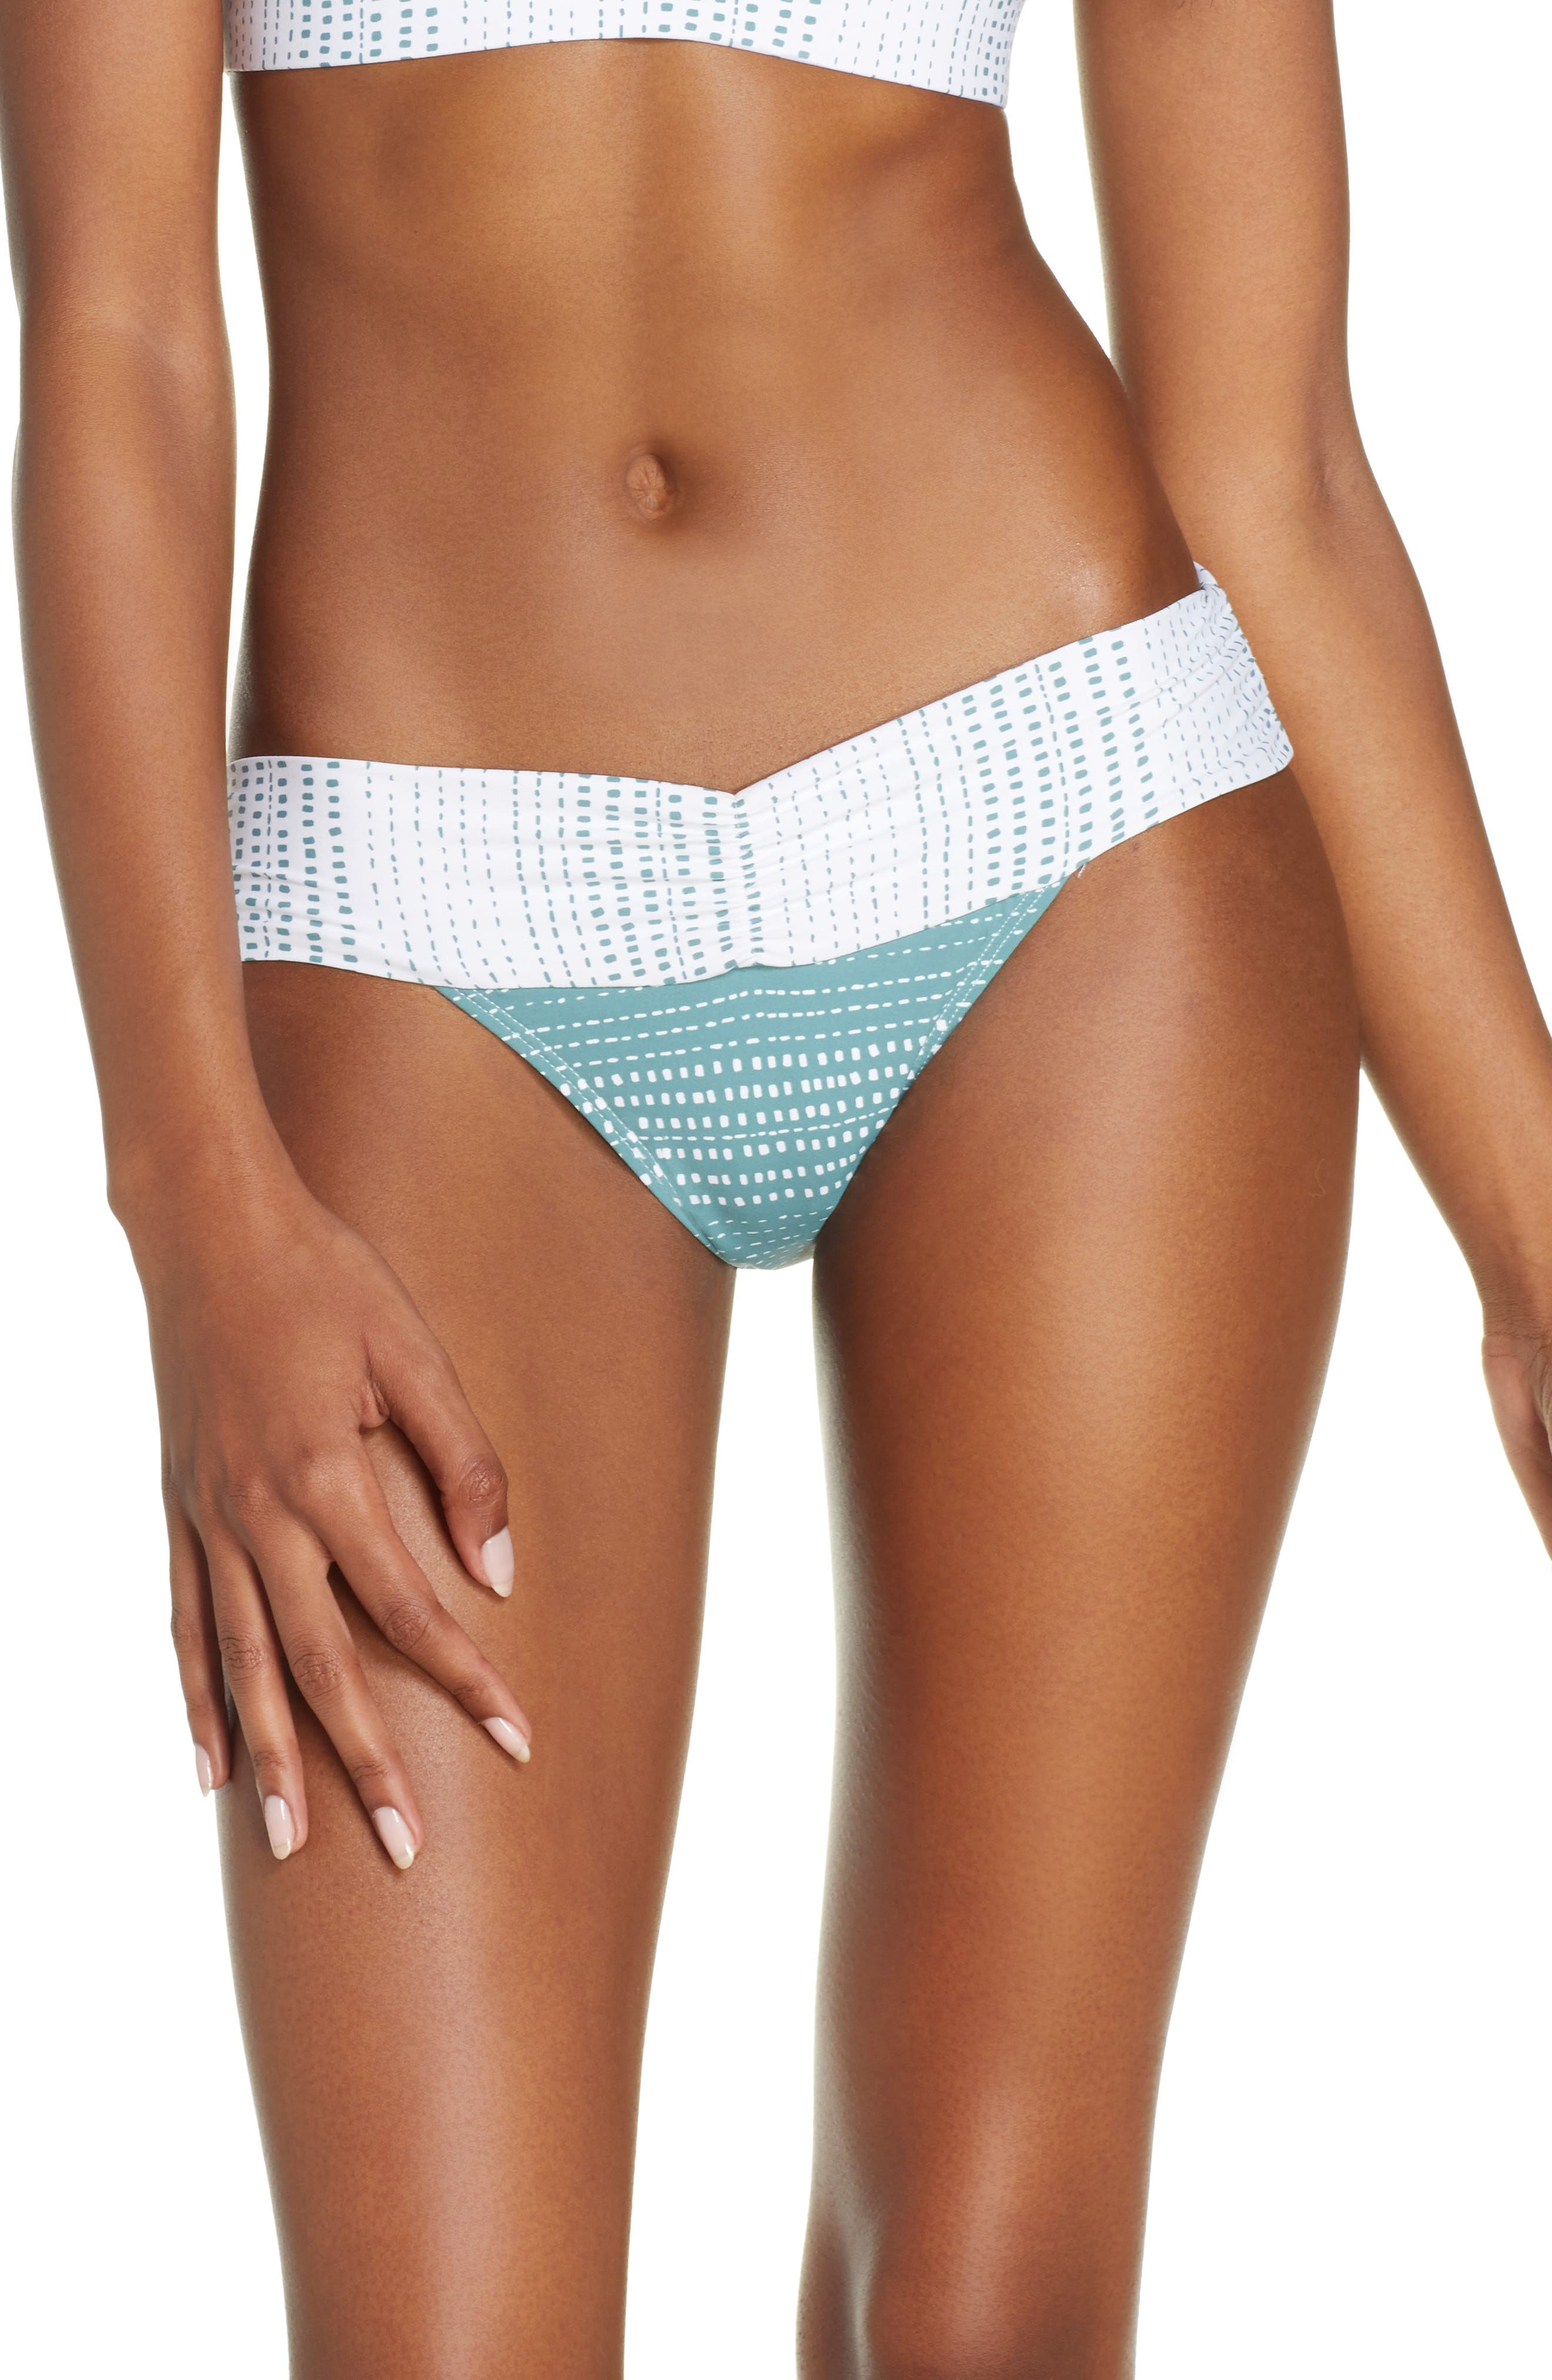 DOLCE VITA, Mojave Swim Bottoms, Main thumbnail 1, color, AGAVE